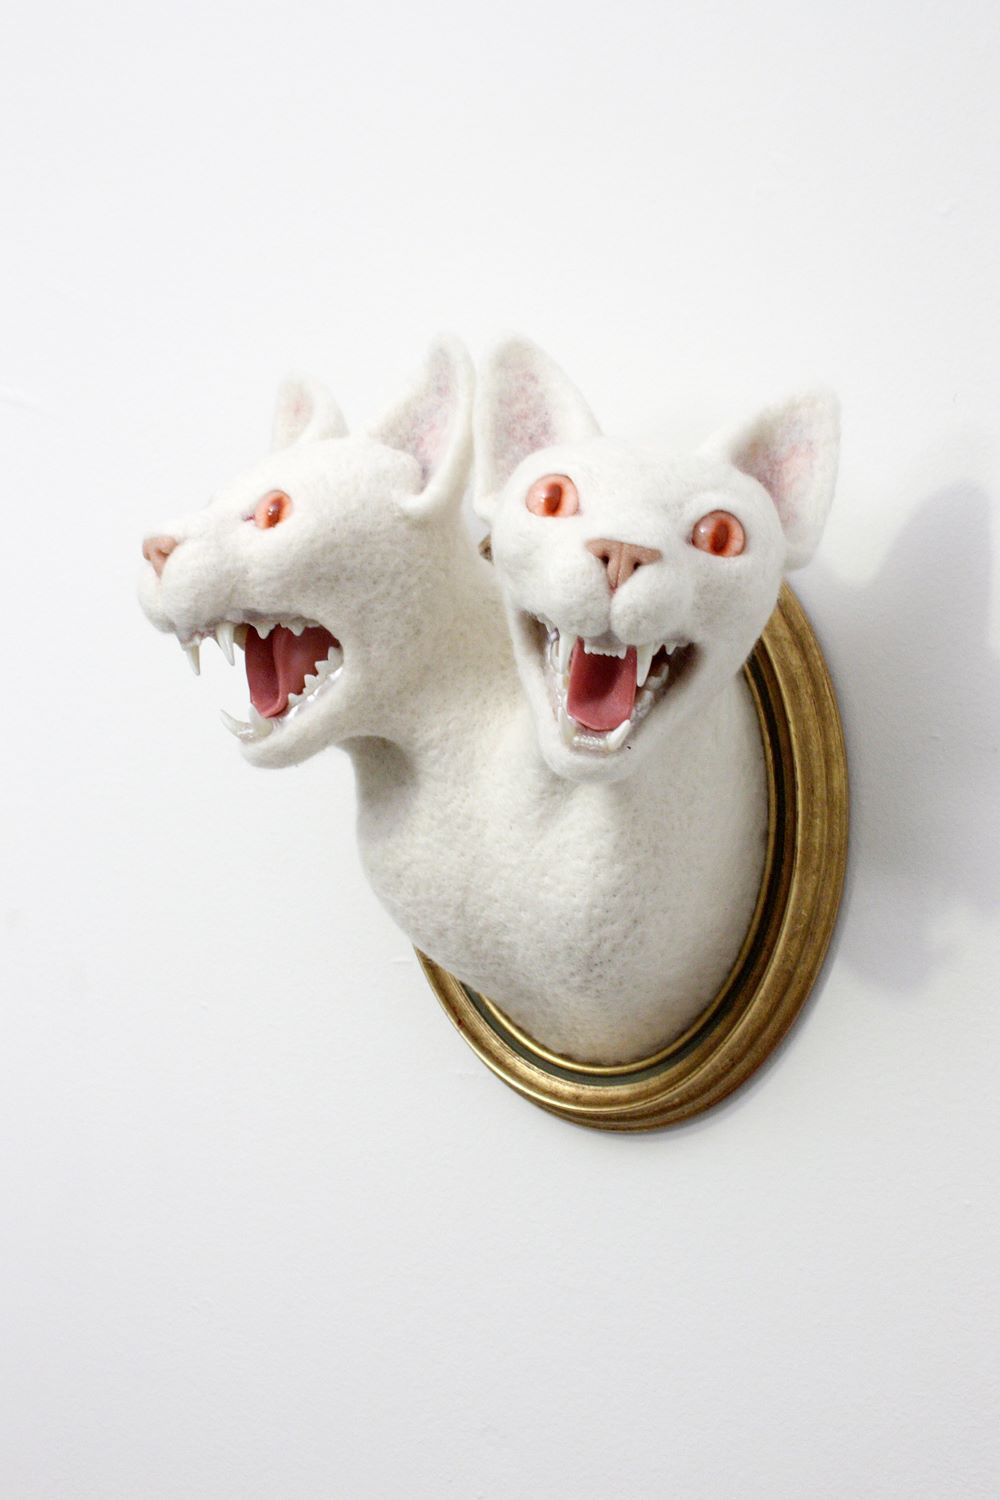 Zoe Williams – The hydra sculpture 2cats